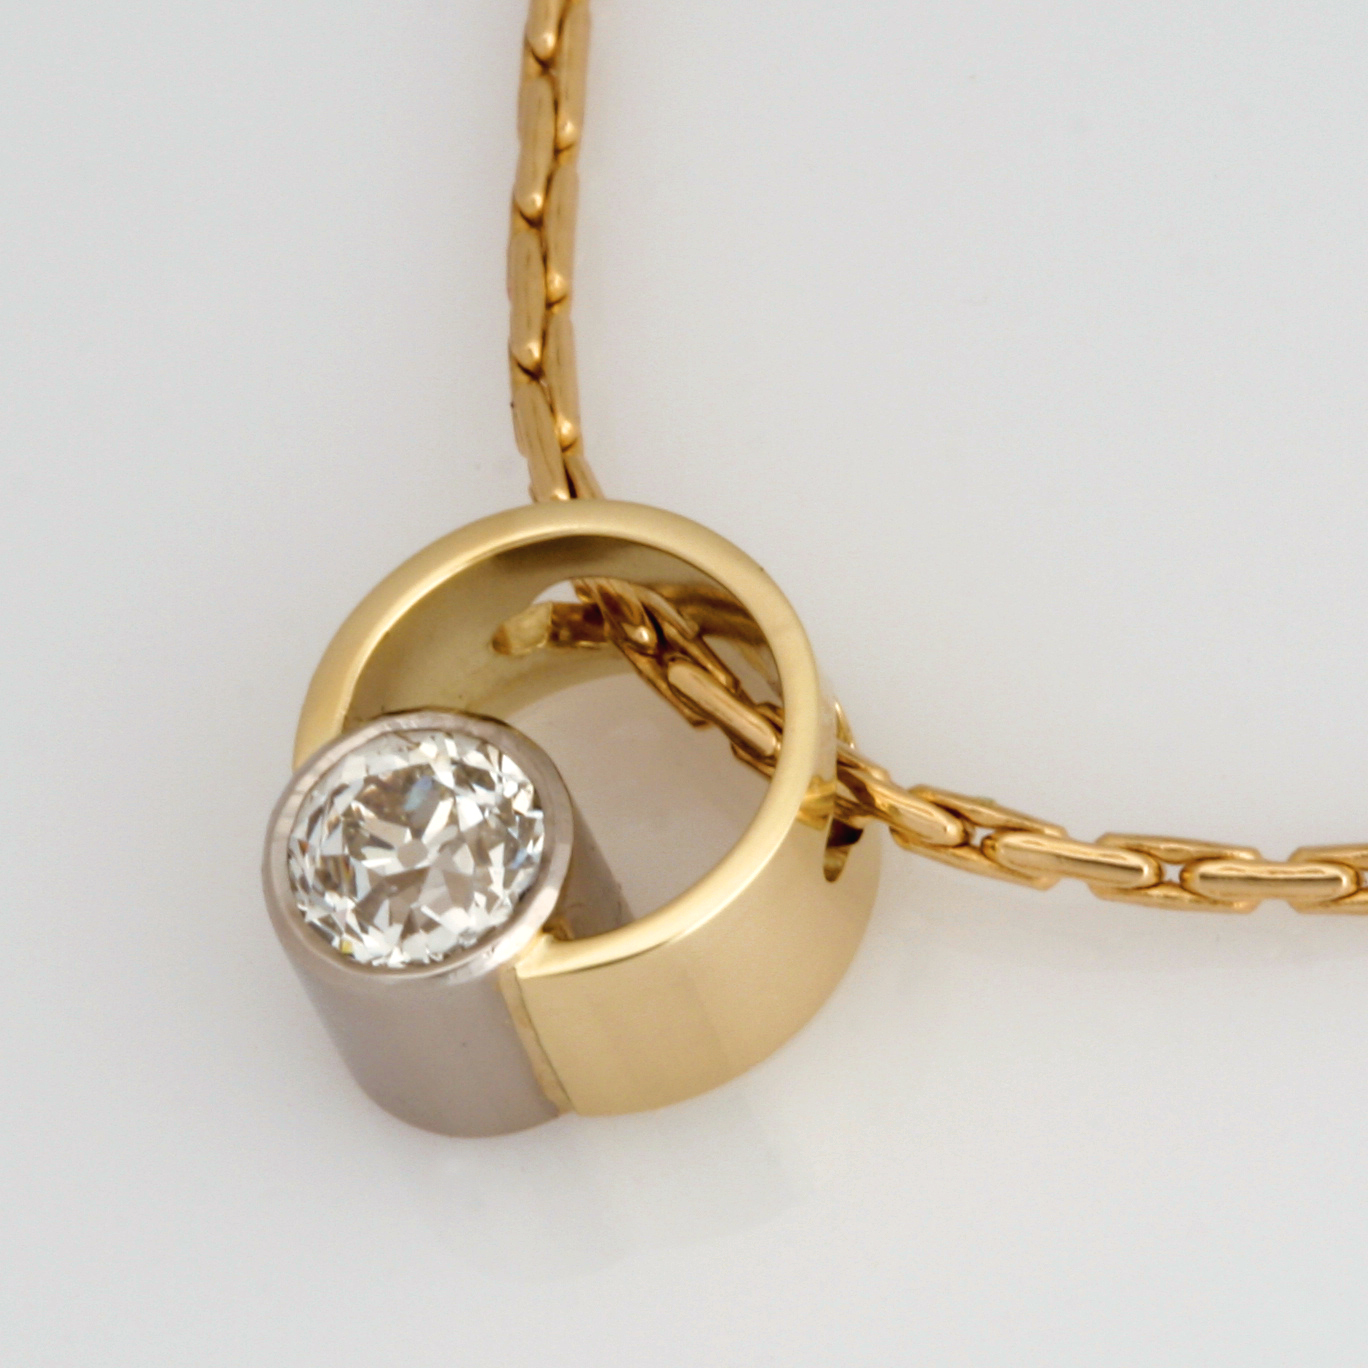 Handmade ladies 18ct yellow gold and palladium old cut diamond pendant featured on a 14ct yellow gold chain.